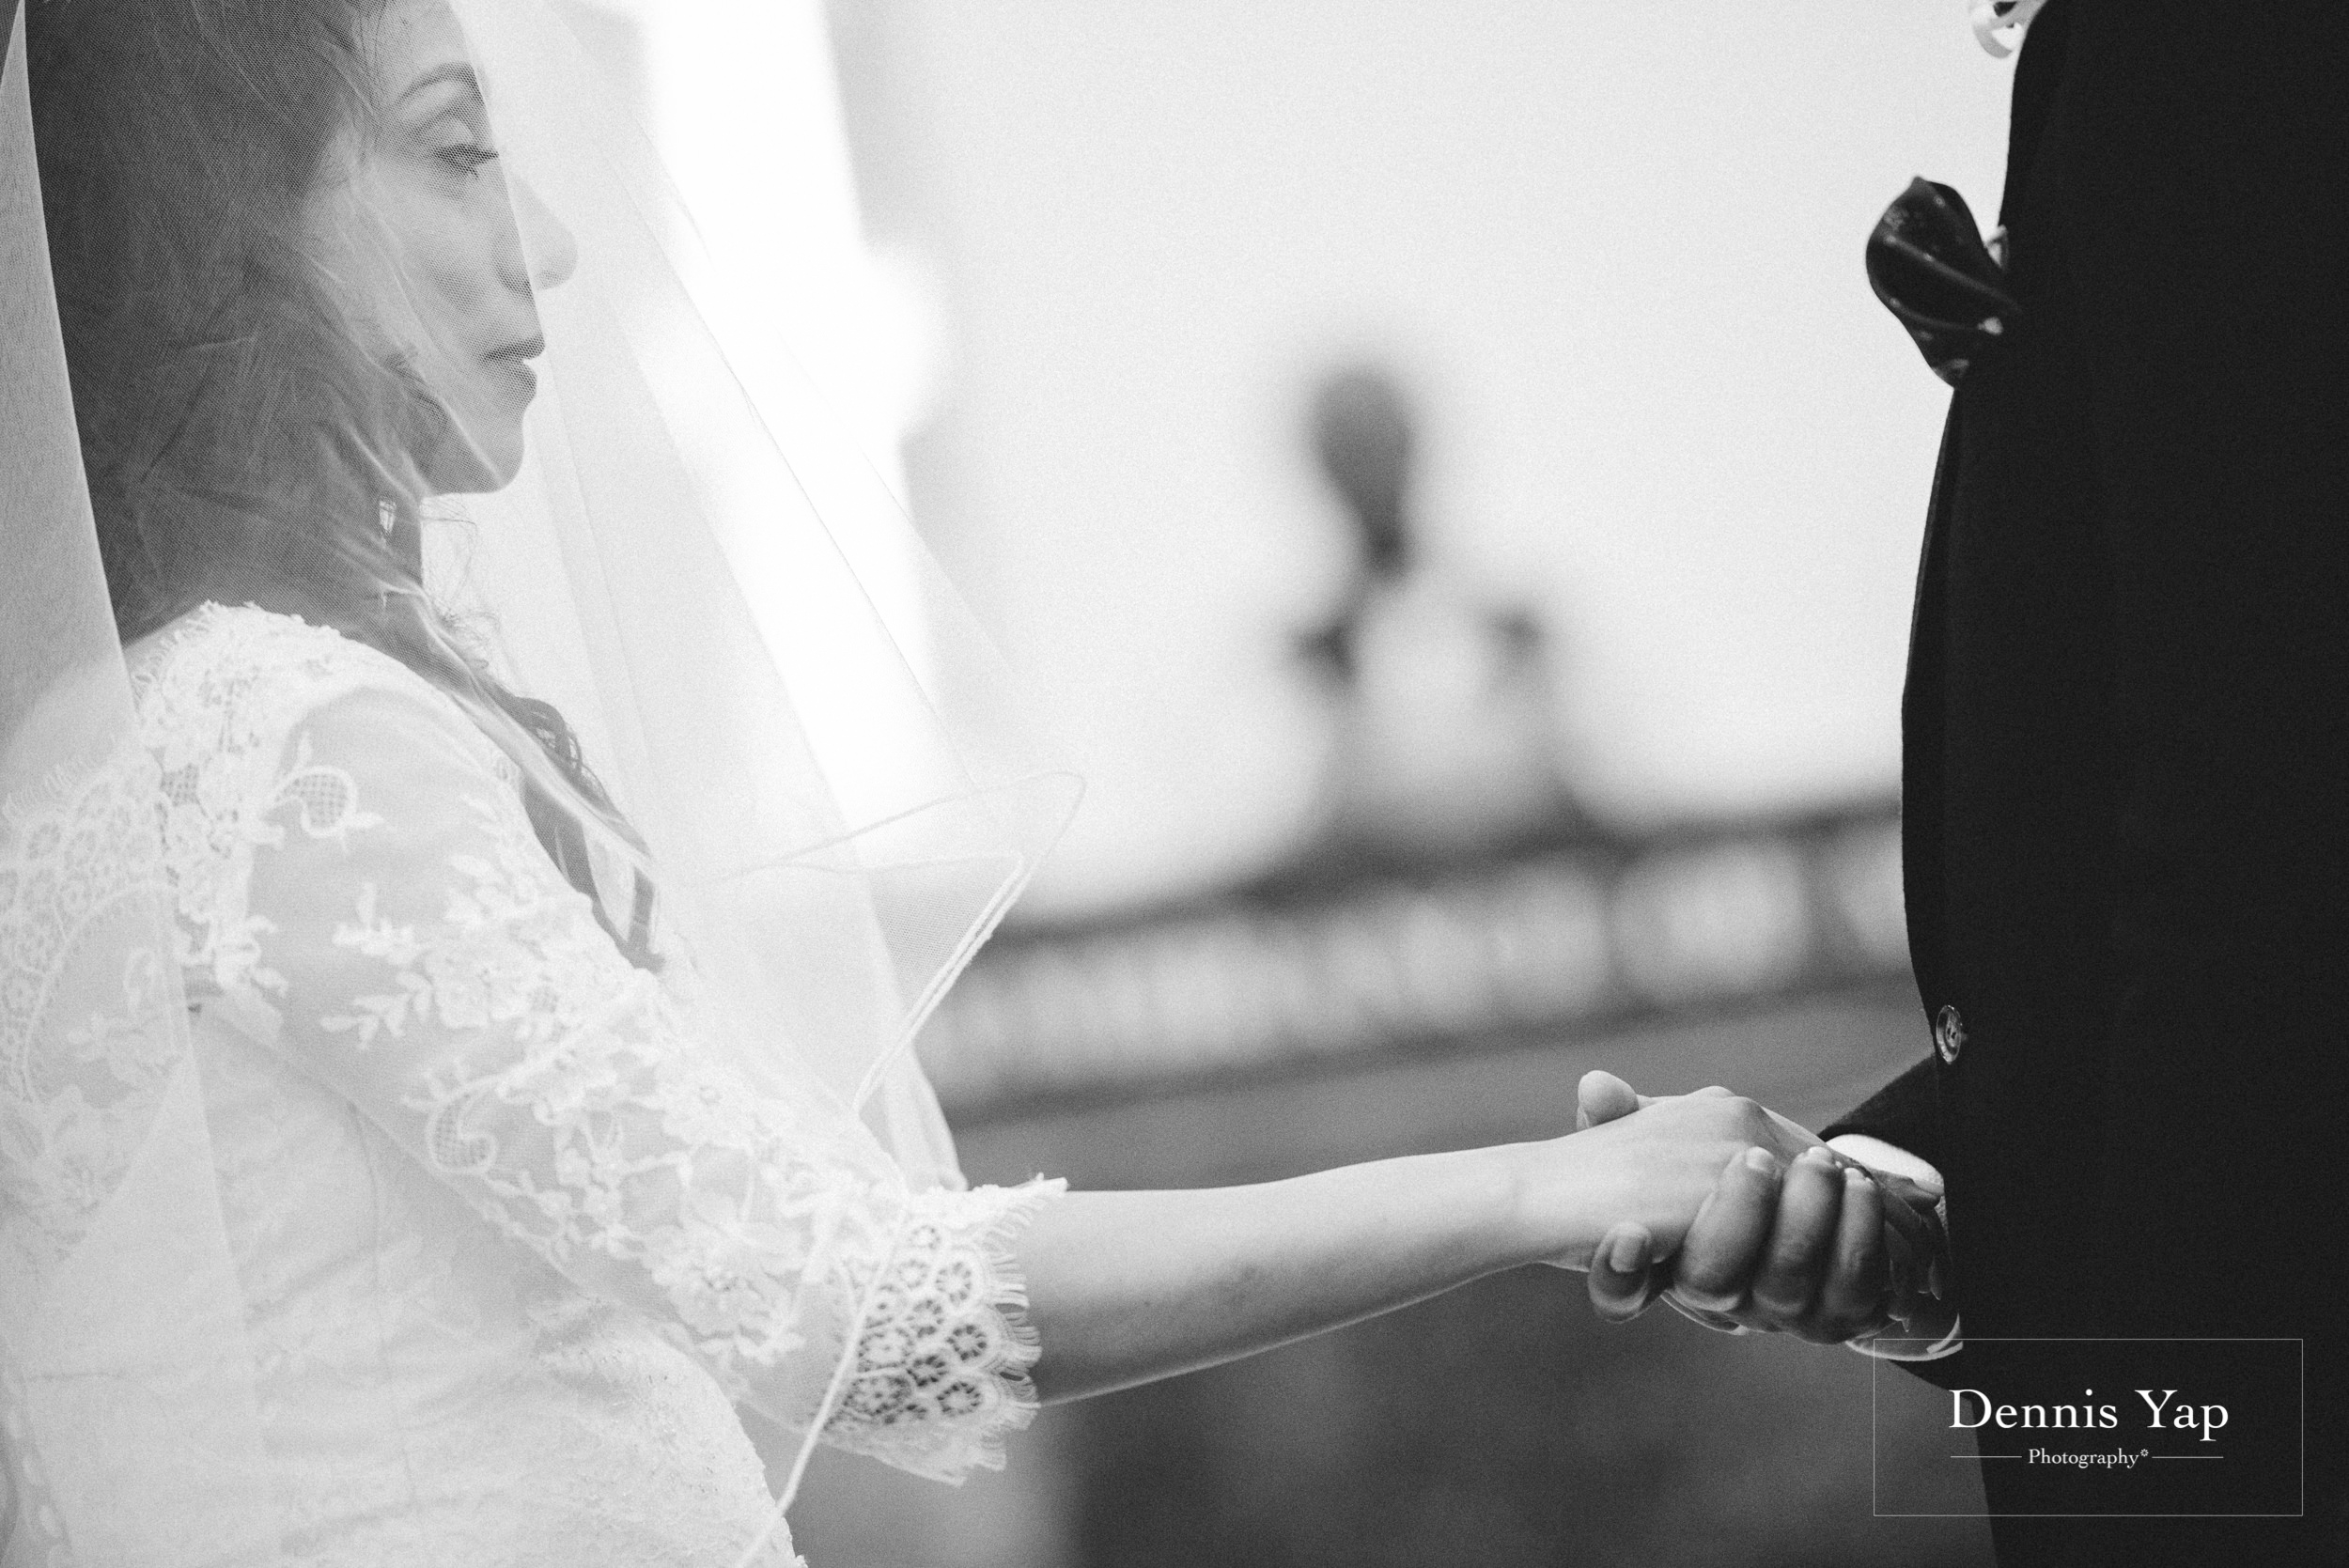 arun angela church wedding st peter bangsar dennis yap photography-19.jpg